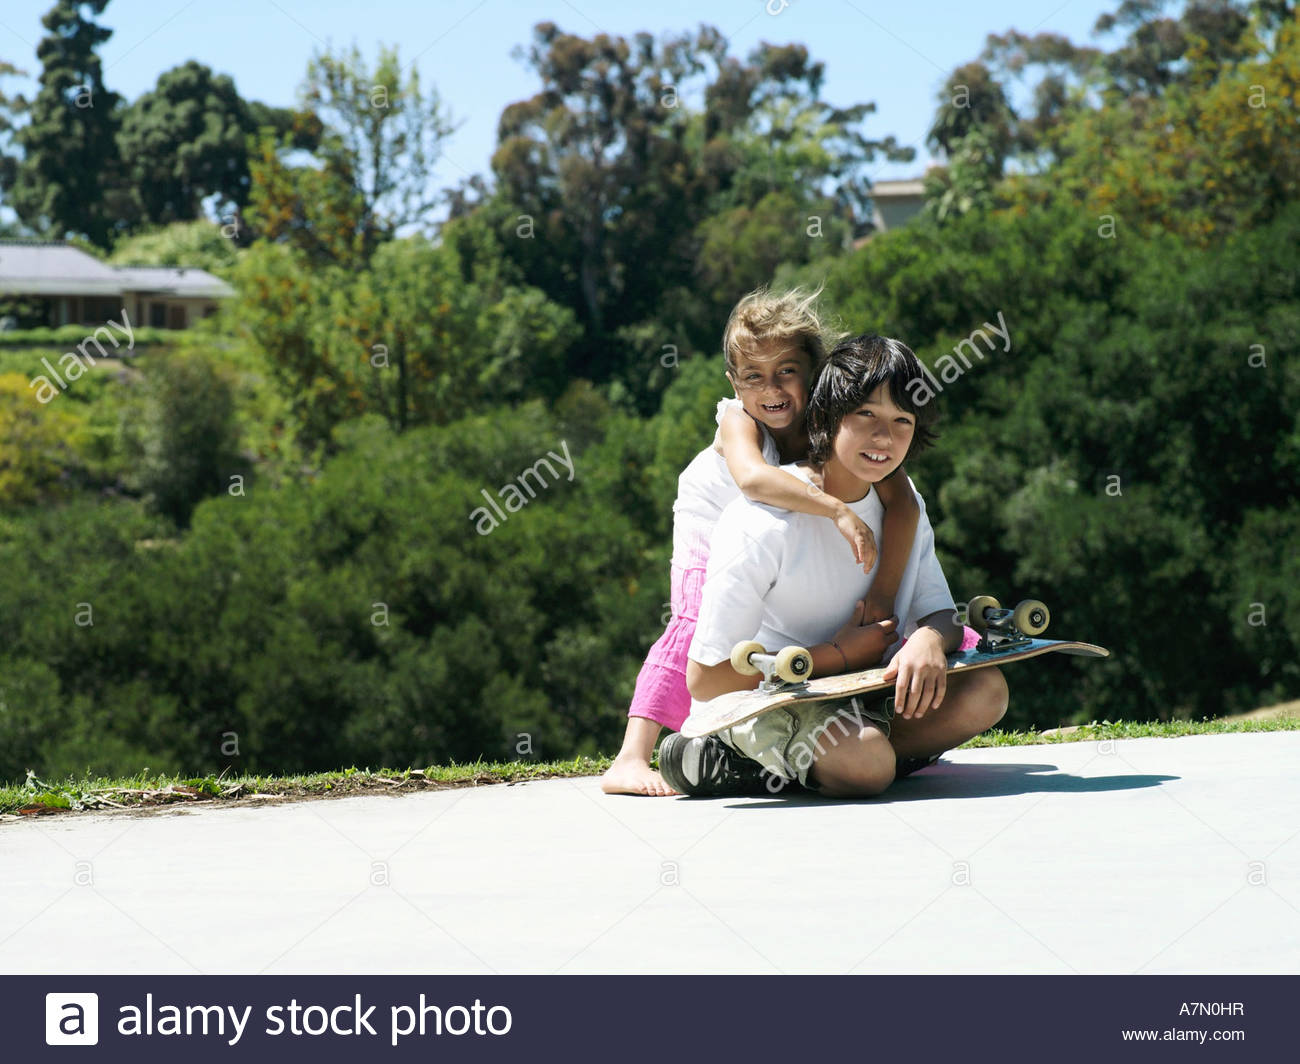 Girl 6 8 embracing brother in park boy 10 12 sitting with skateboard smiling portrait - Stock Image